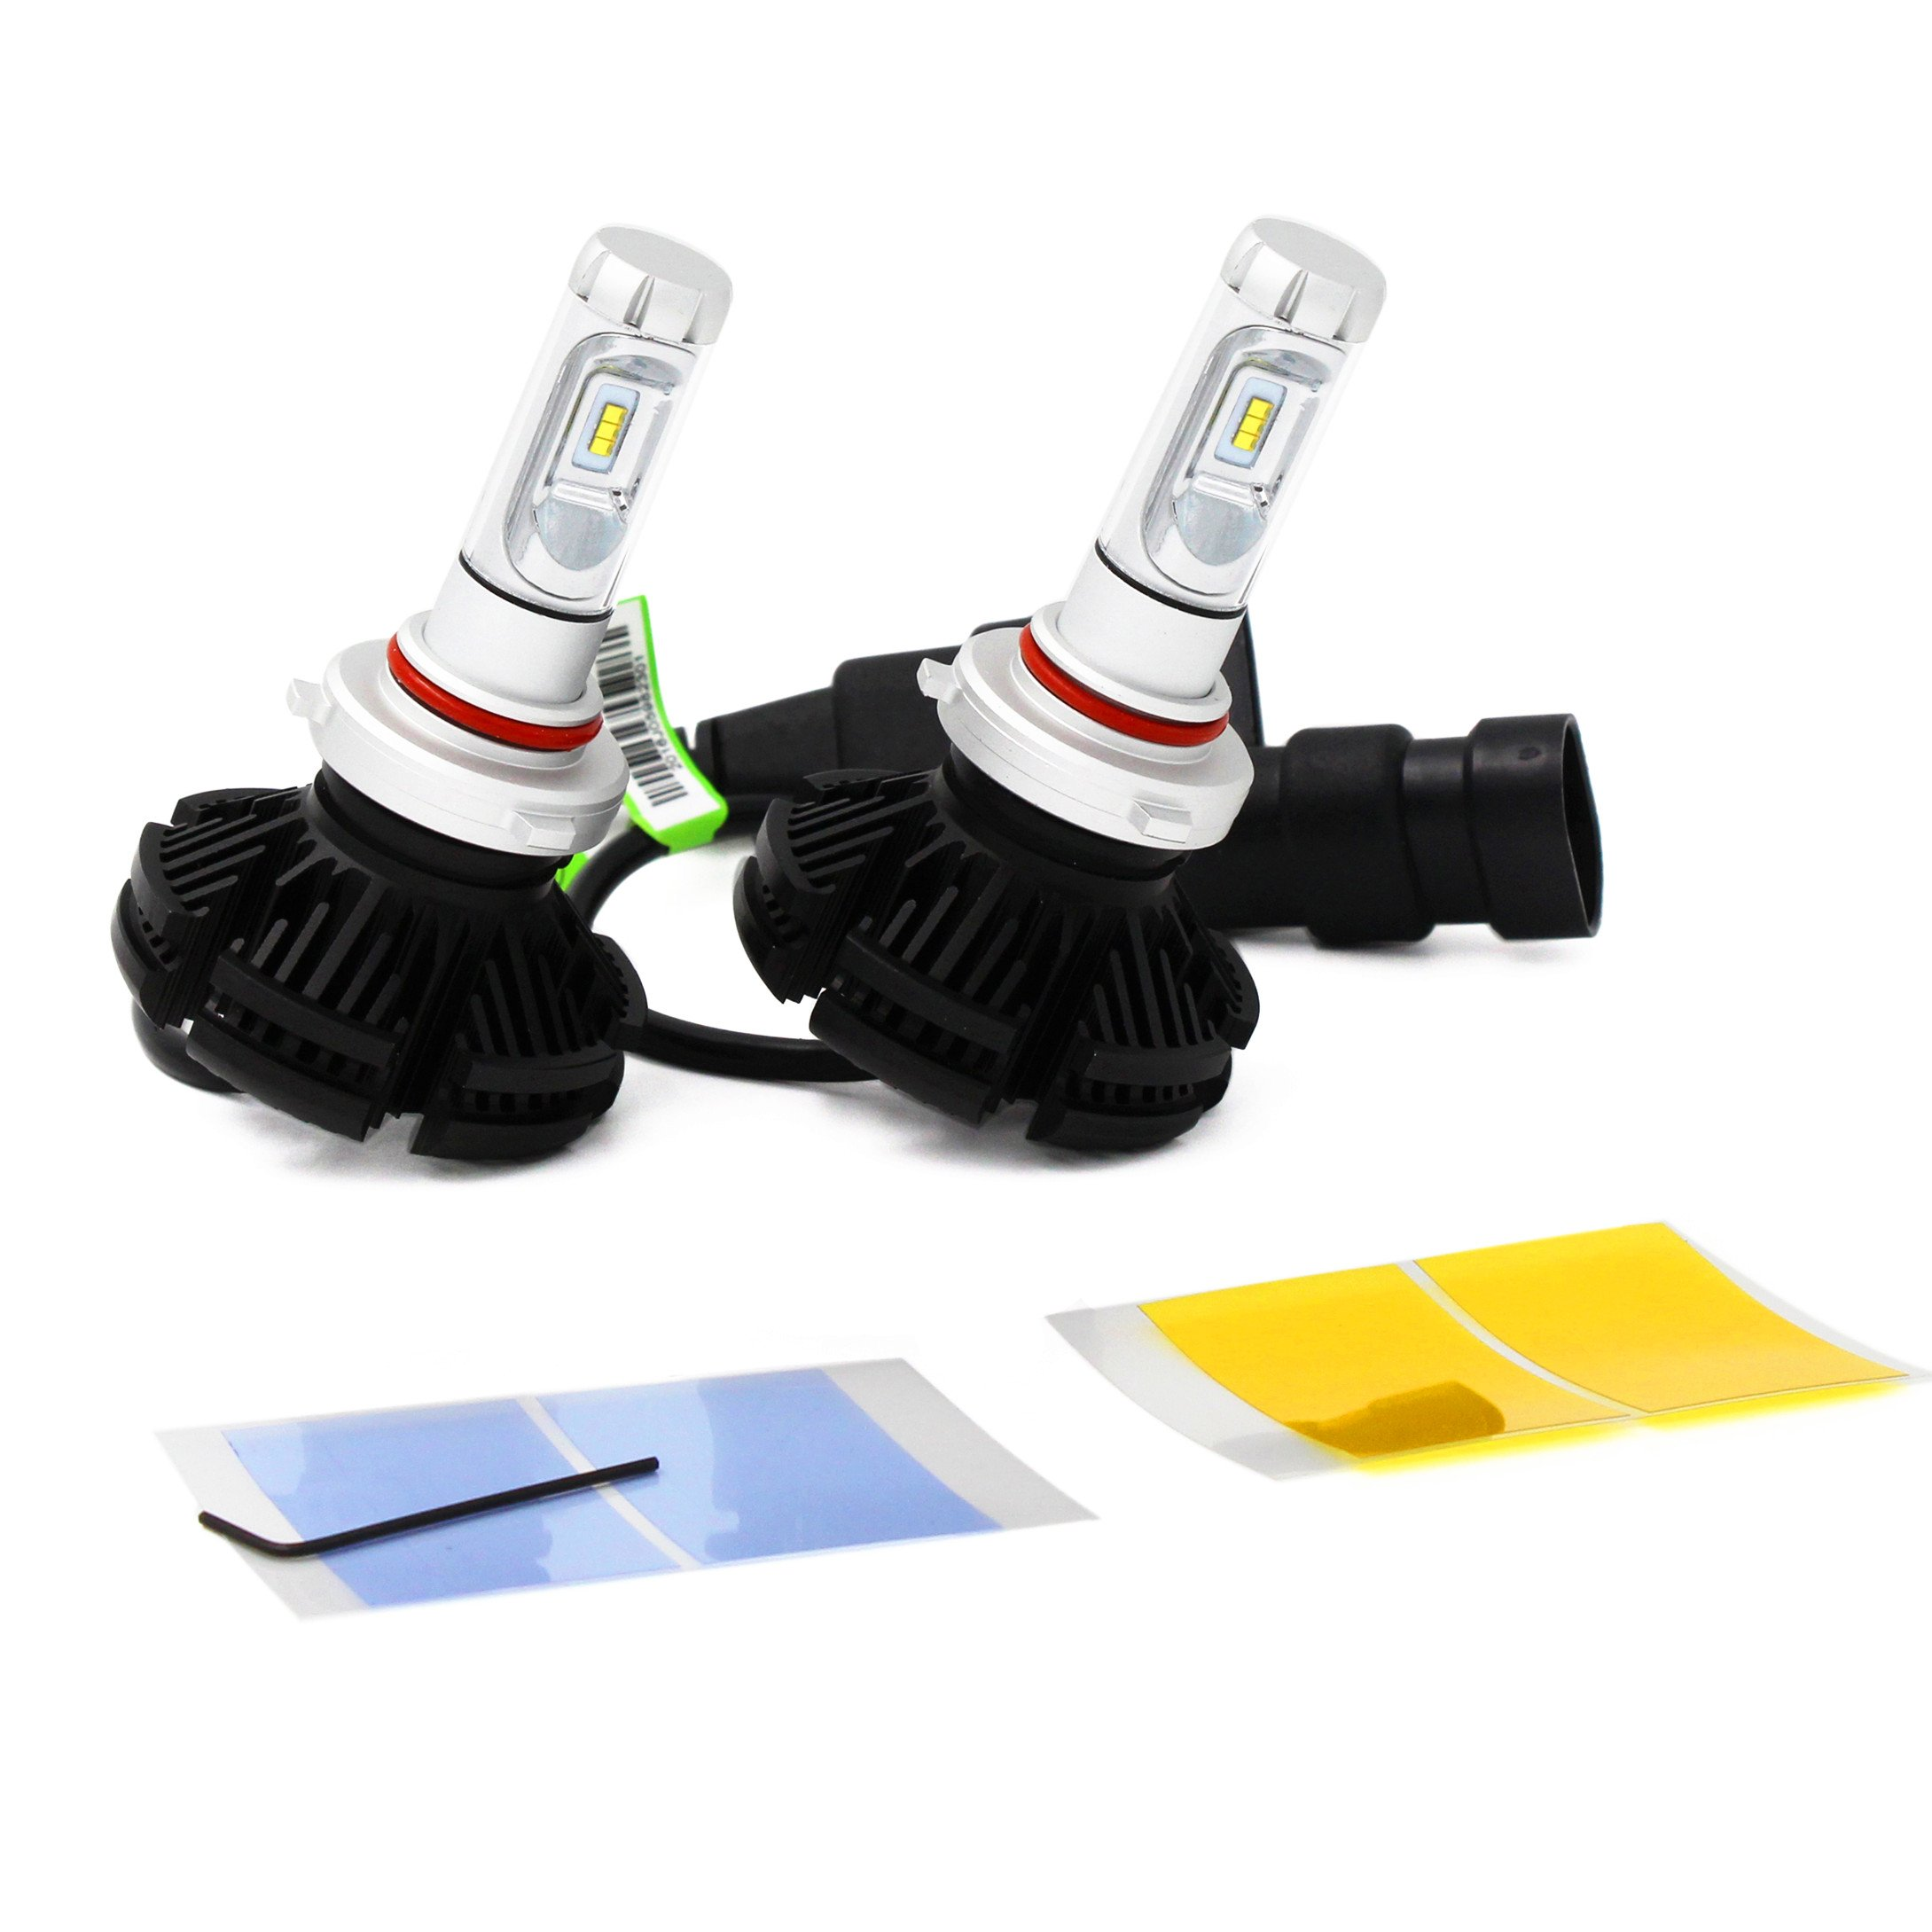 Alla Lighting 2017 X3 Newest 6000lm DIY 3 Colors White Gold Yellow Ice Blue Xtremely Super Bright High Power ZES Chips Mini 9005 HB3 LED Headlight Conversion Kits Bulbs -- 2 Year Warranty (9005 HB3)